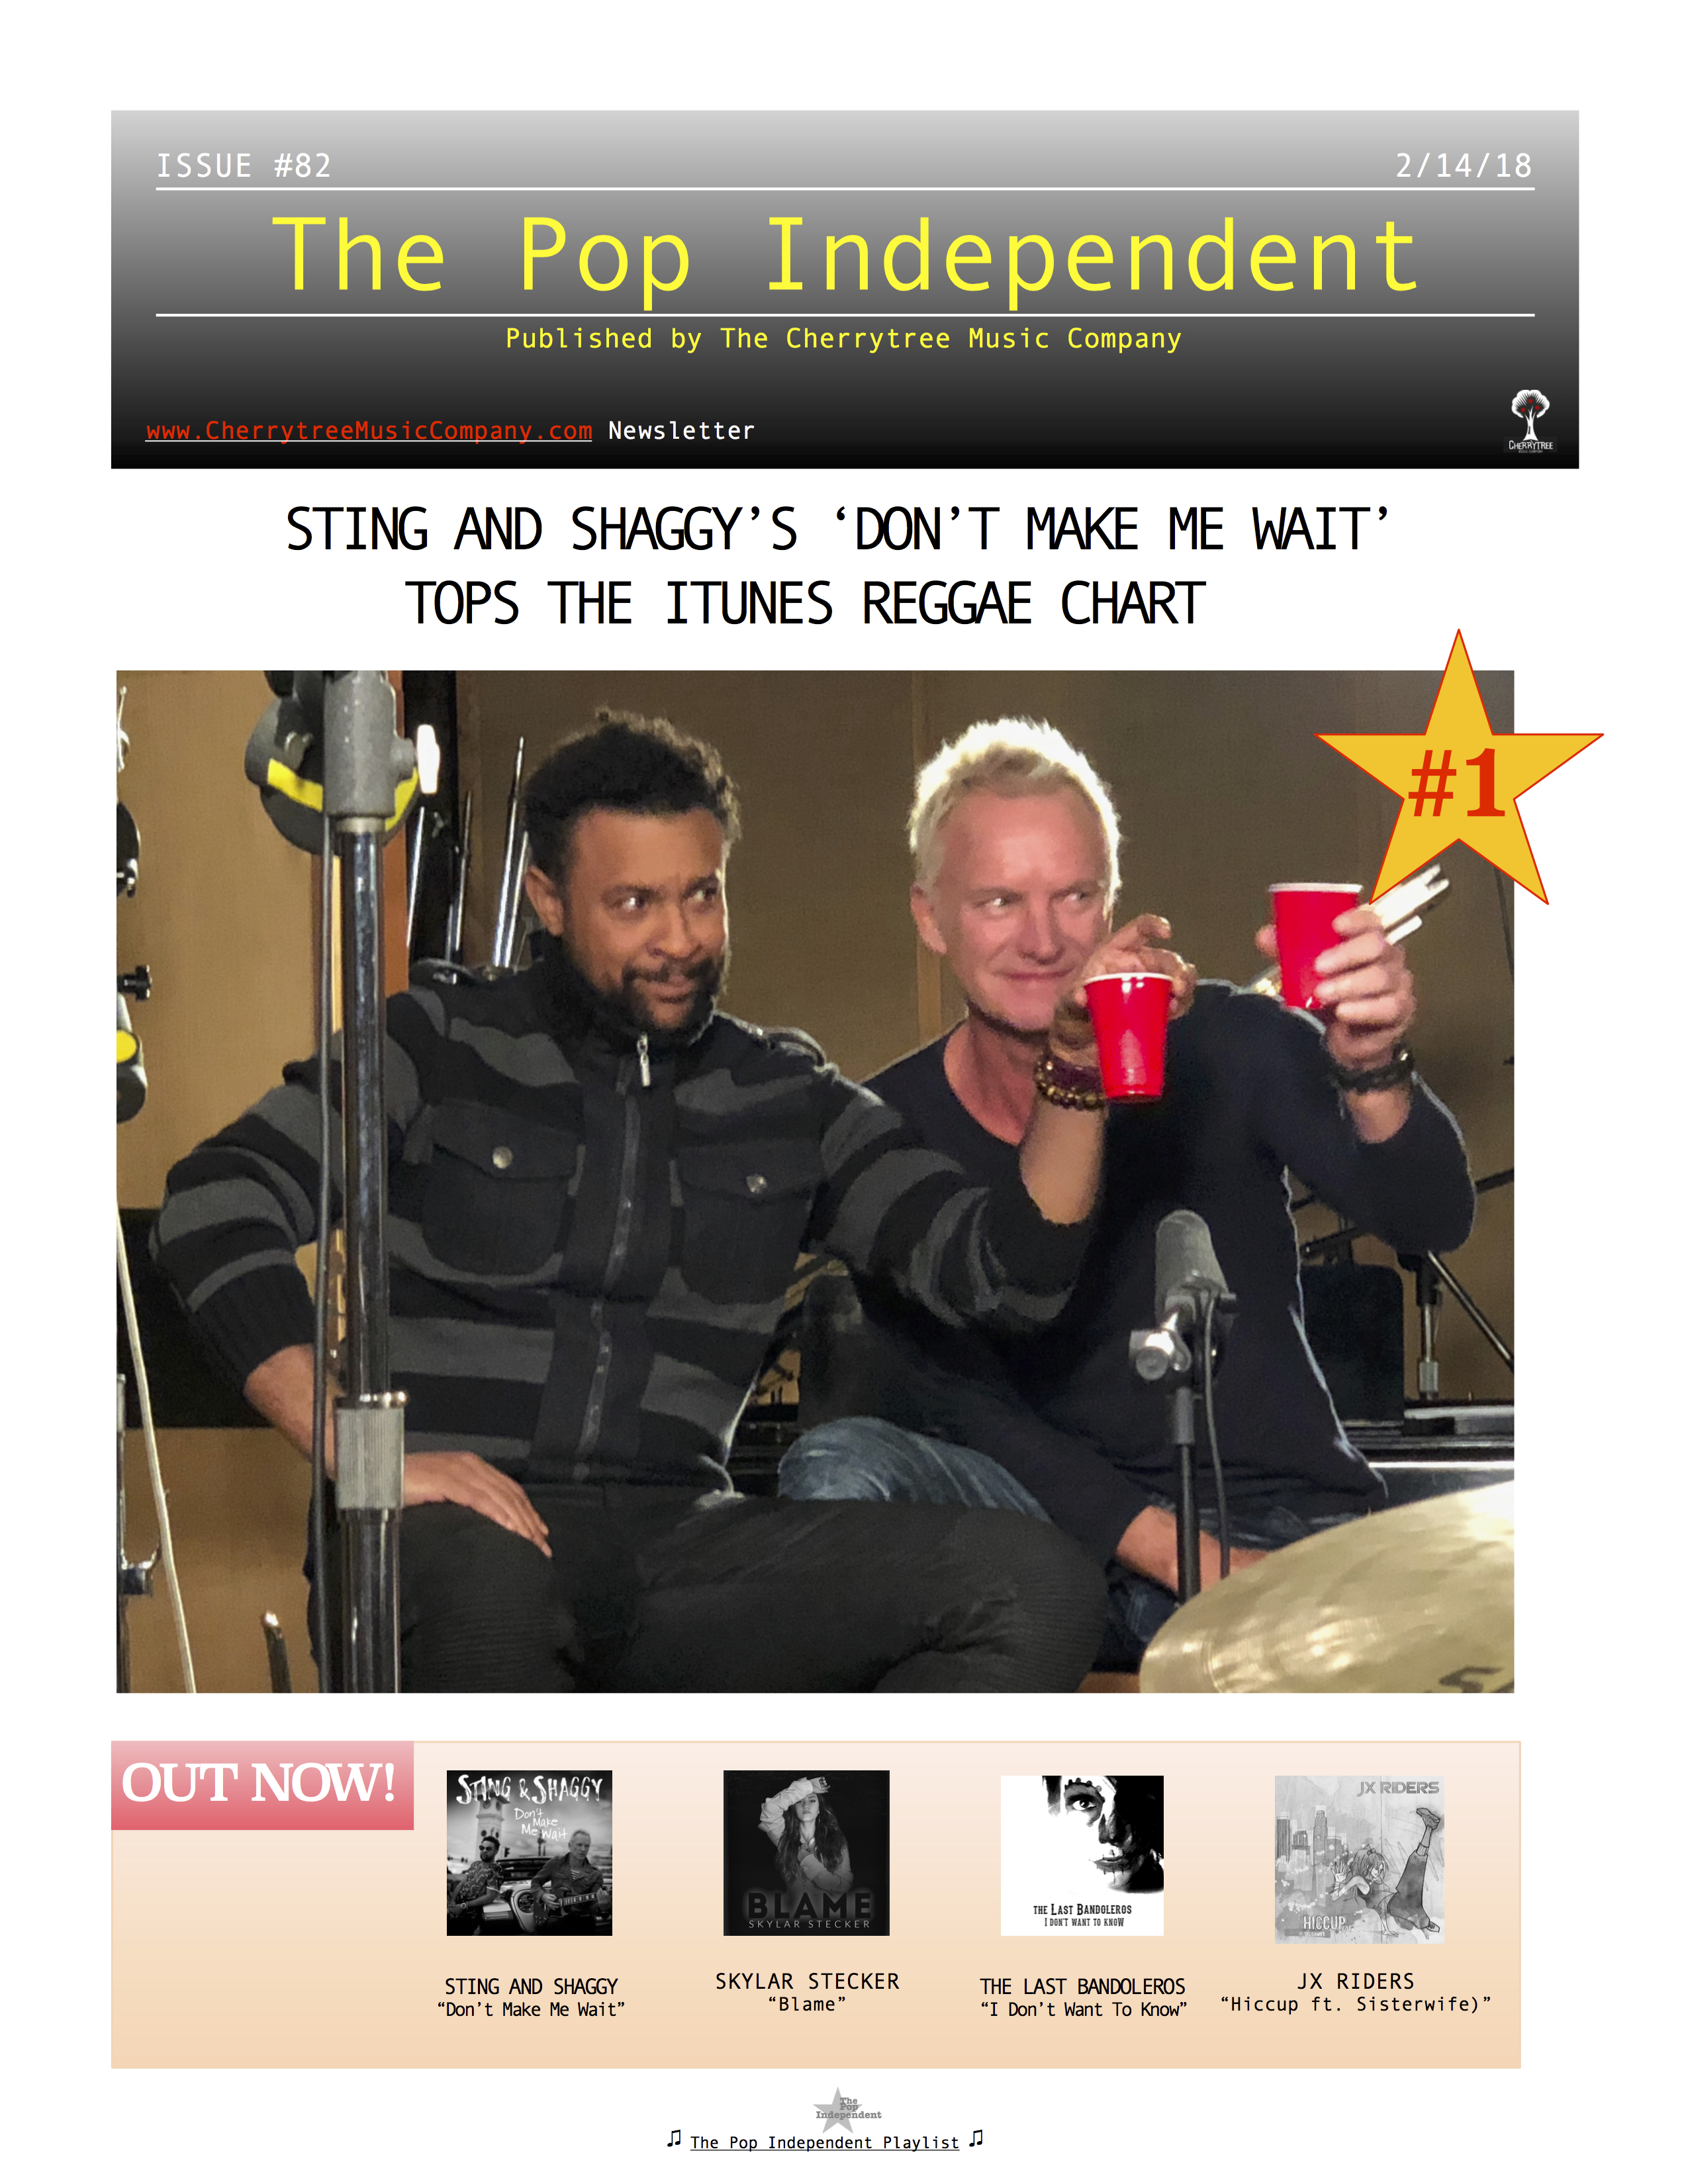 The Pop Independent, issue 82